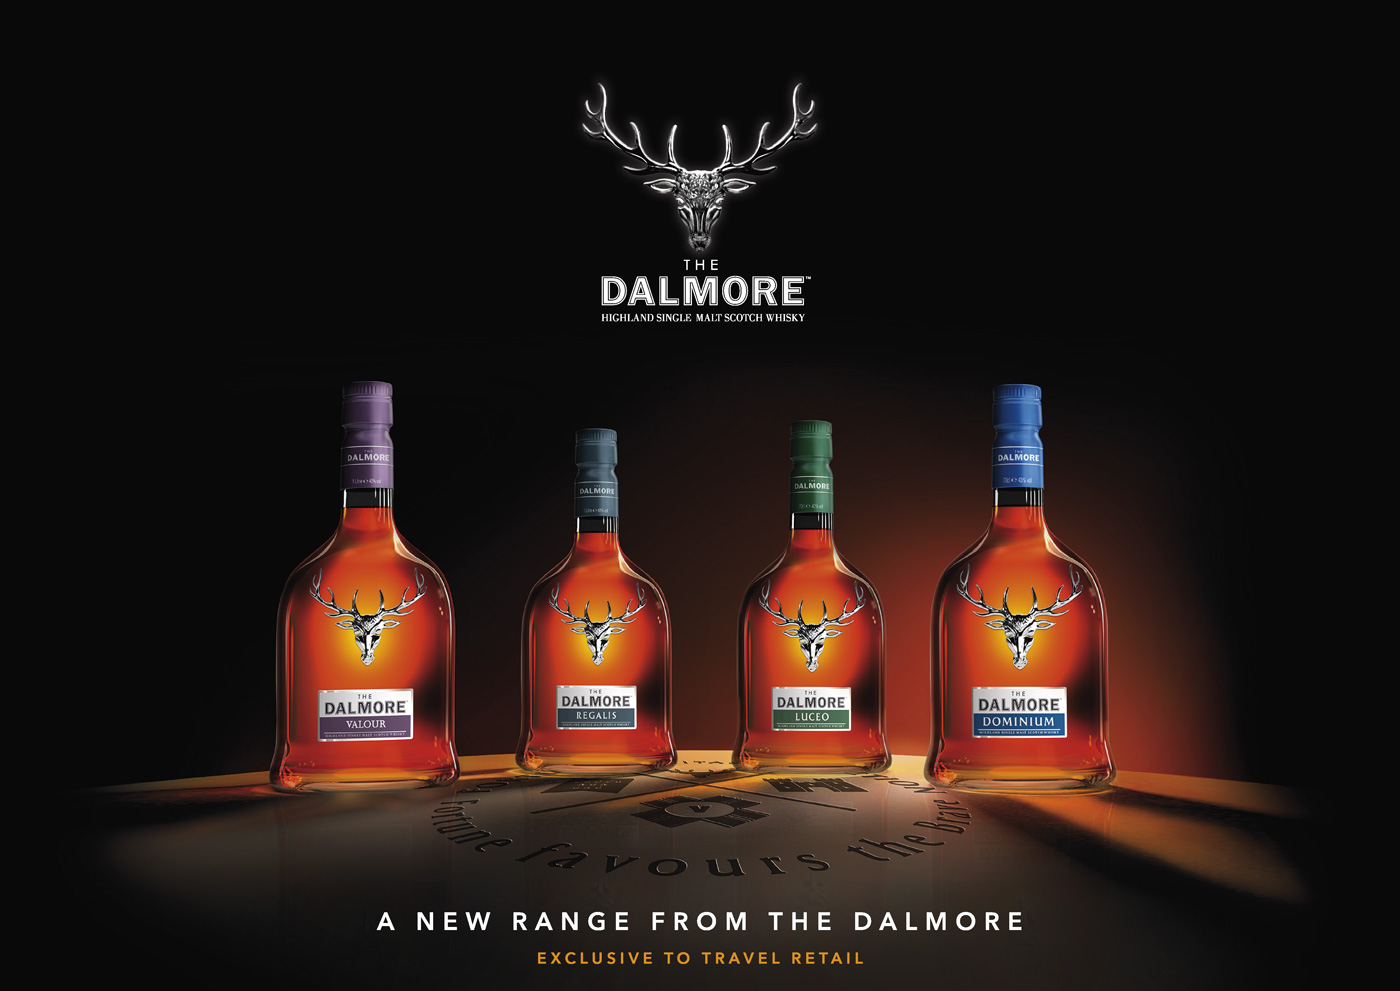 The Dalmore Key visual